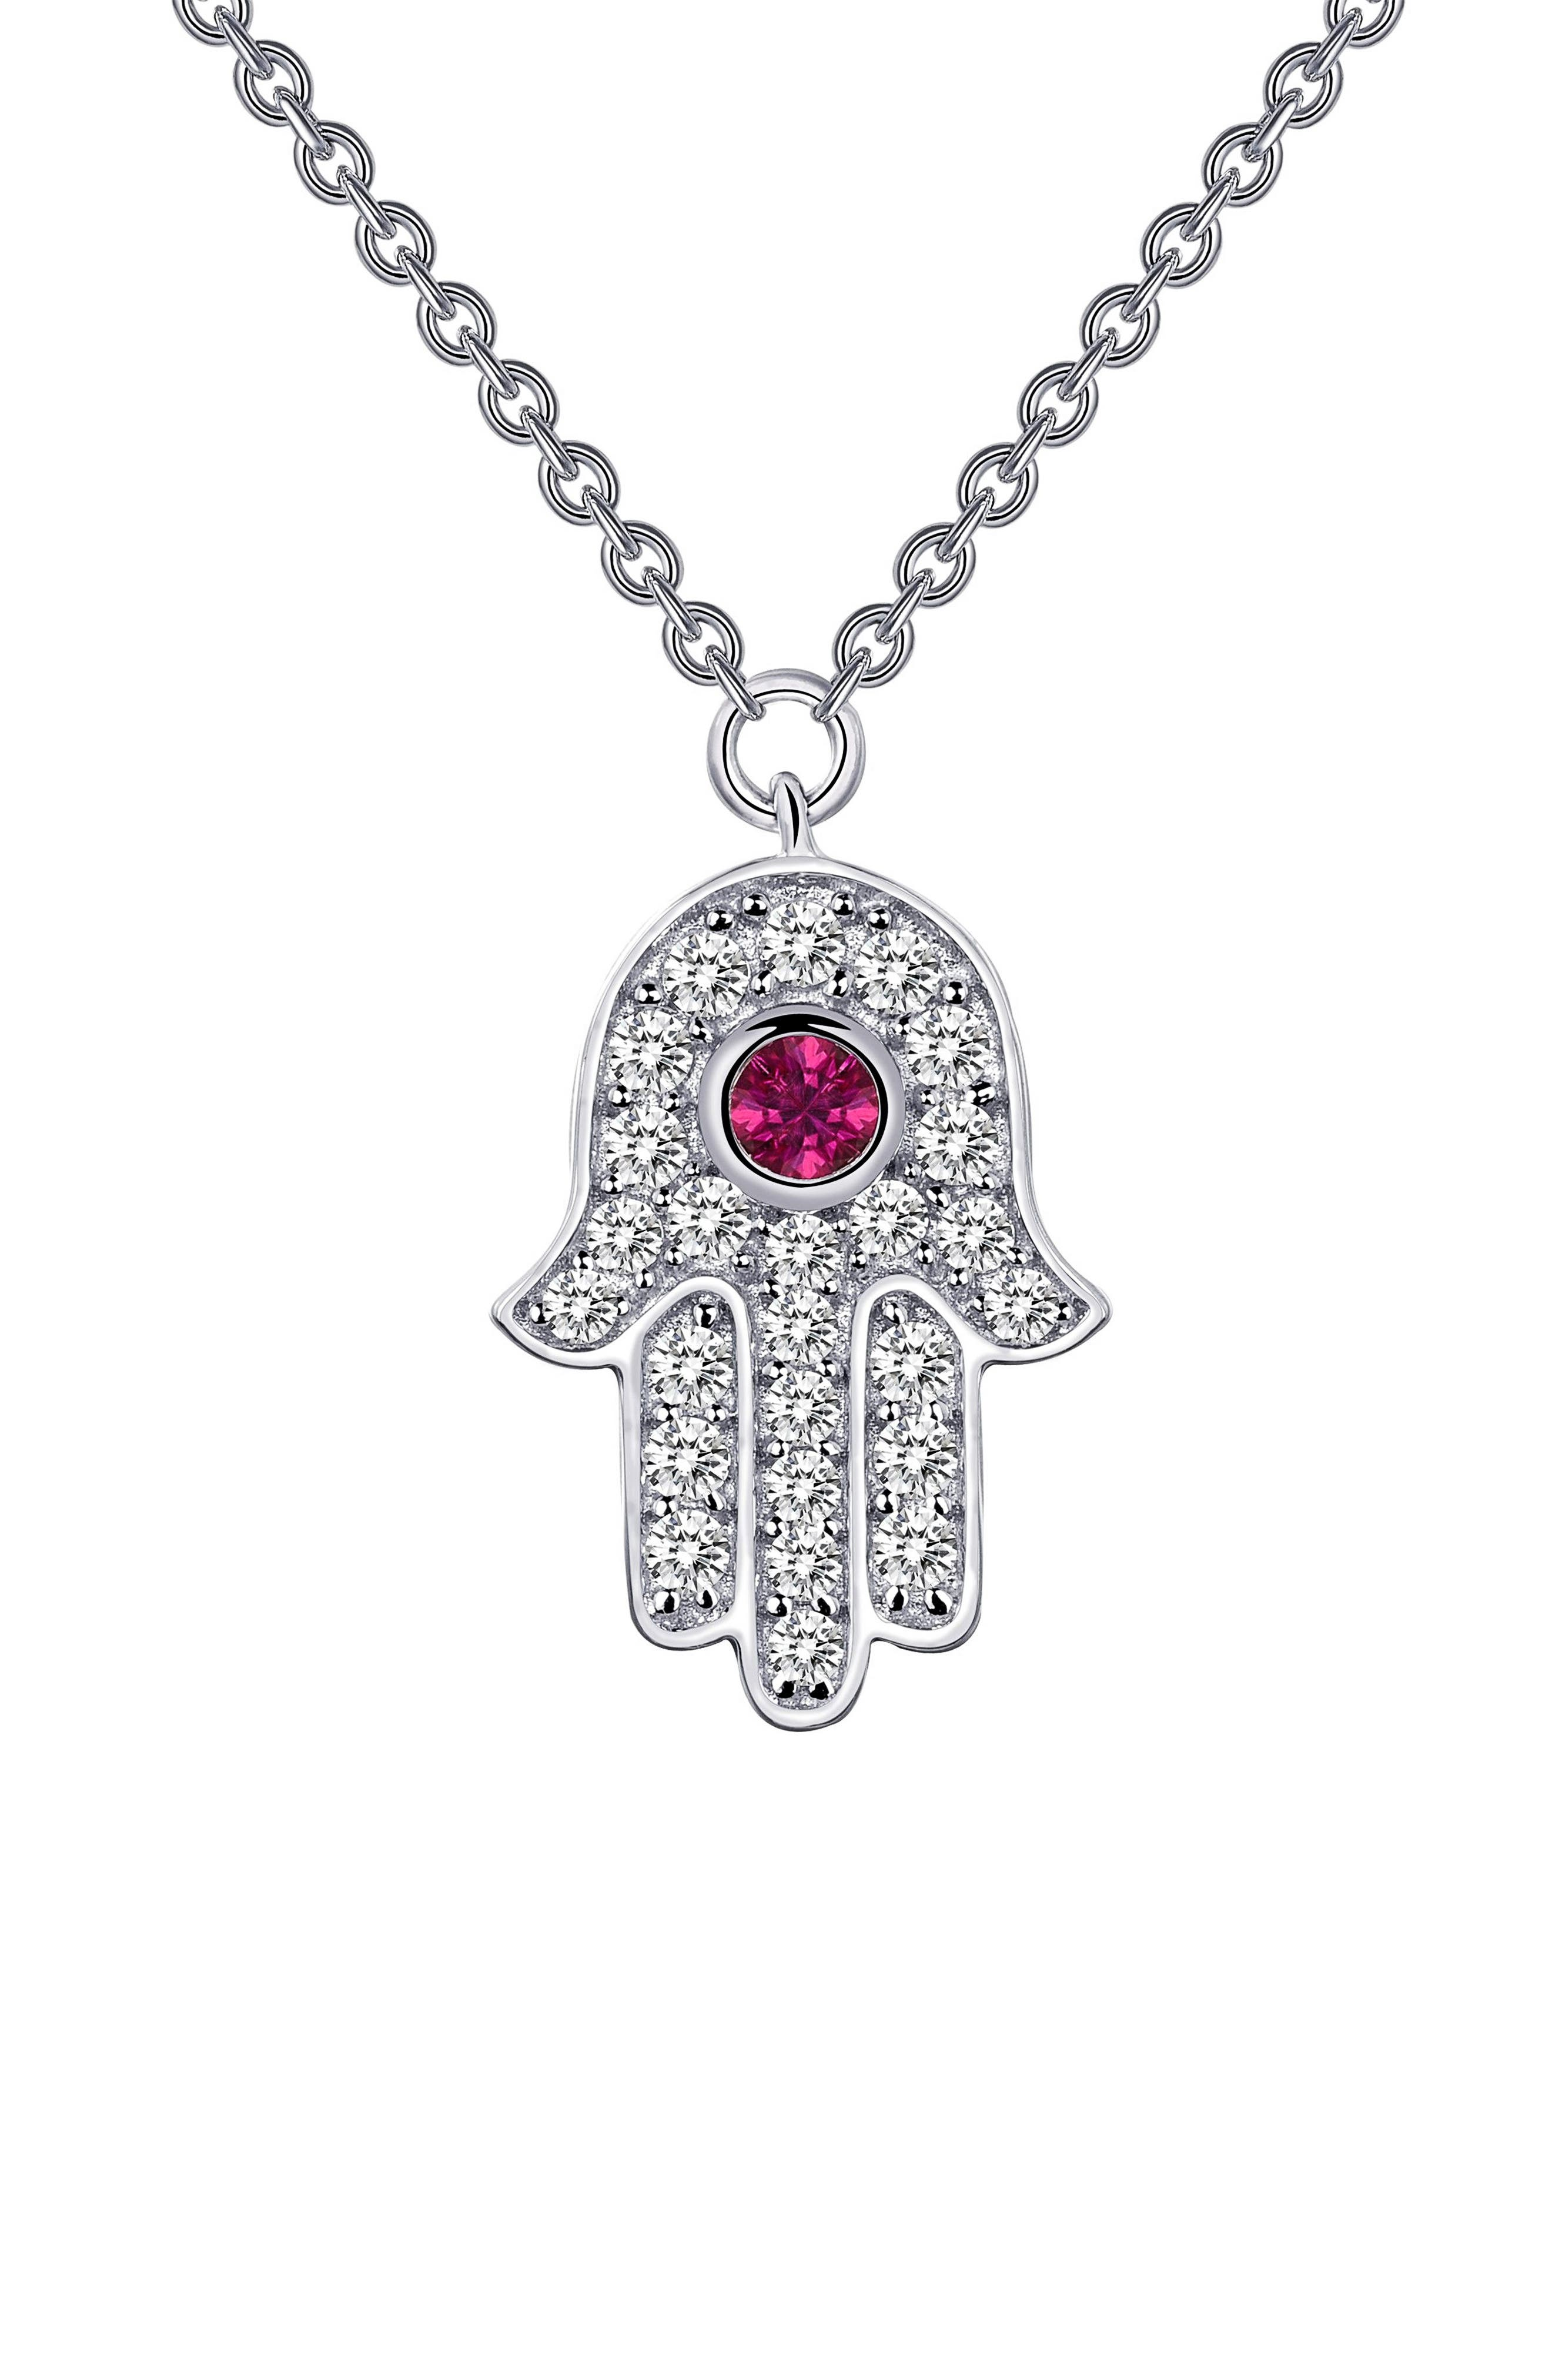 Simulated Diamond Hamsa Pendant Necklace,                             Main thumbnail 1, color,                             040